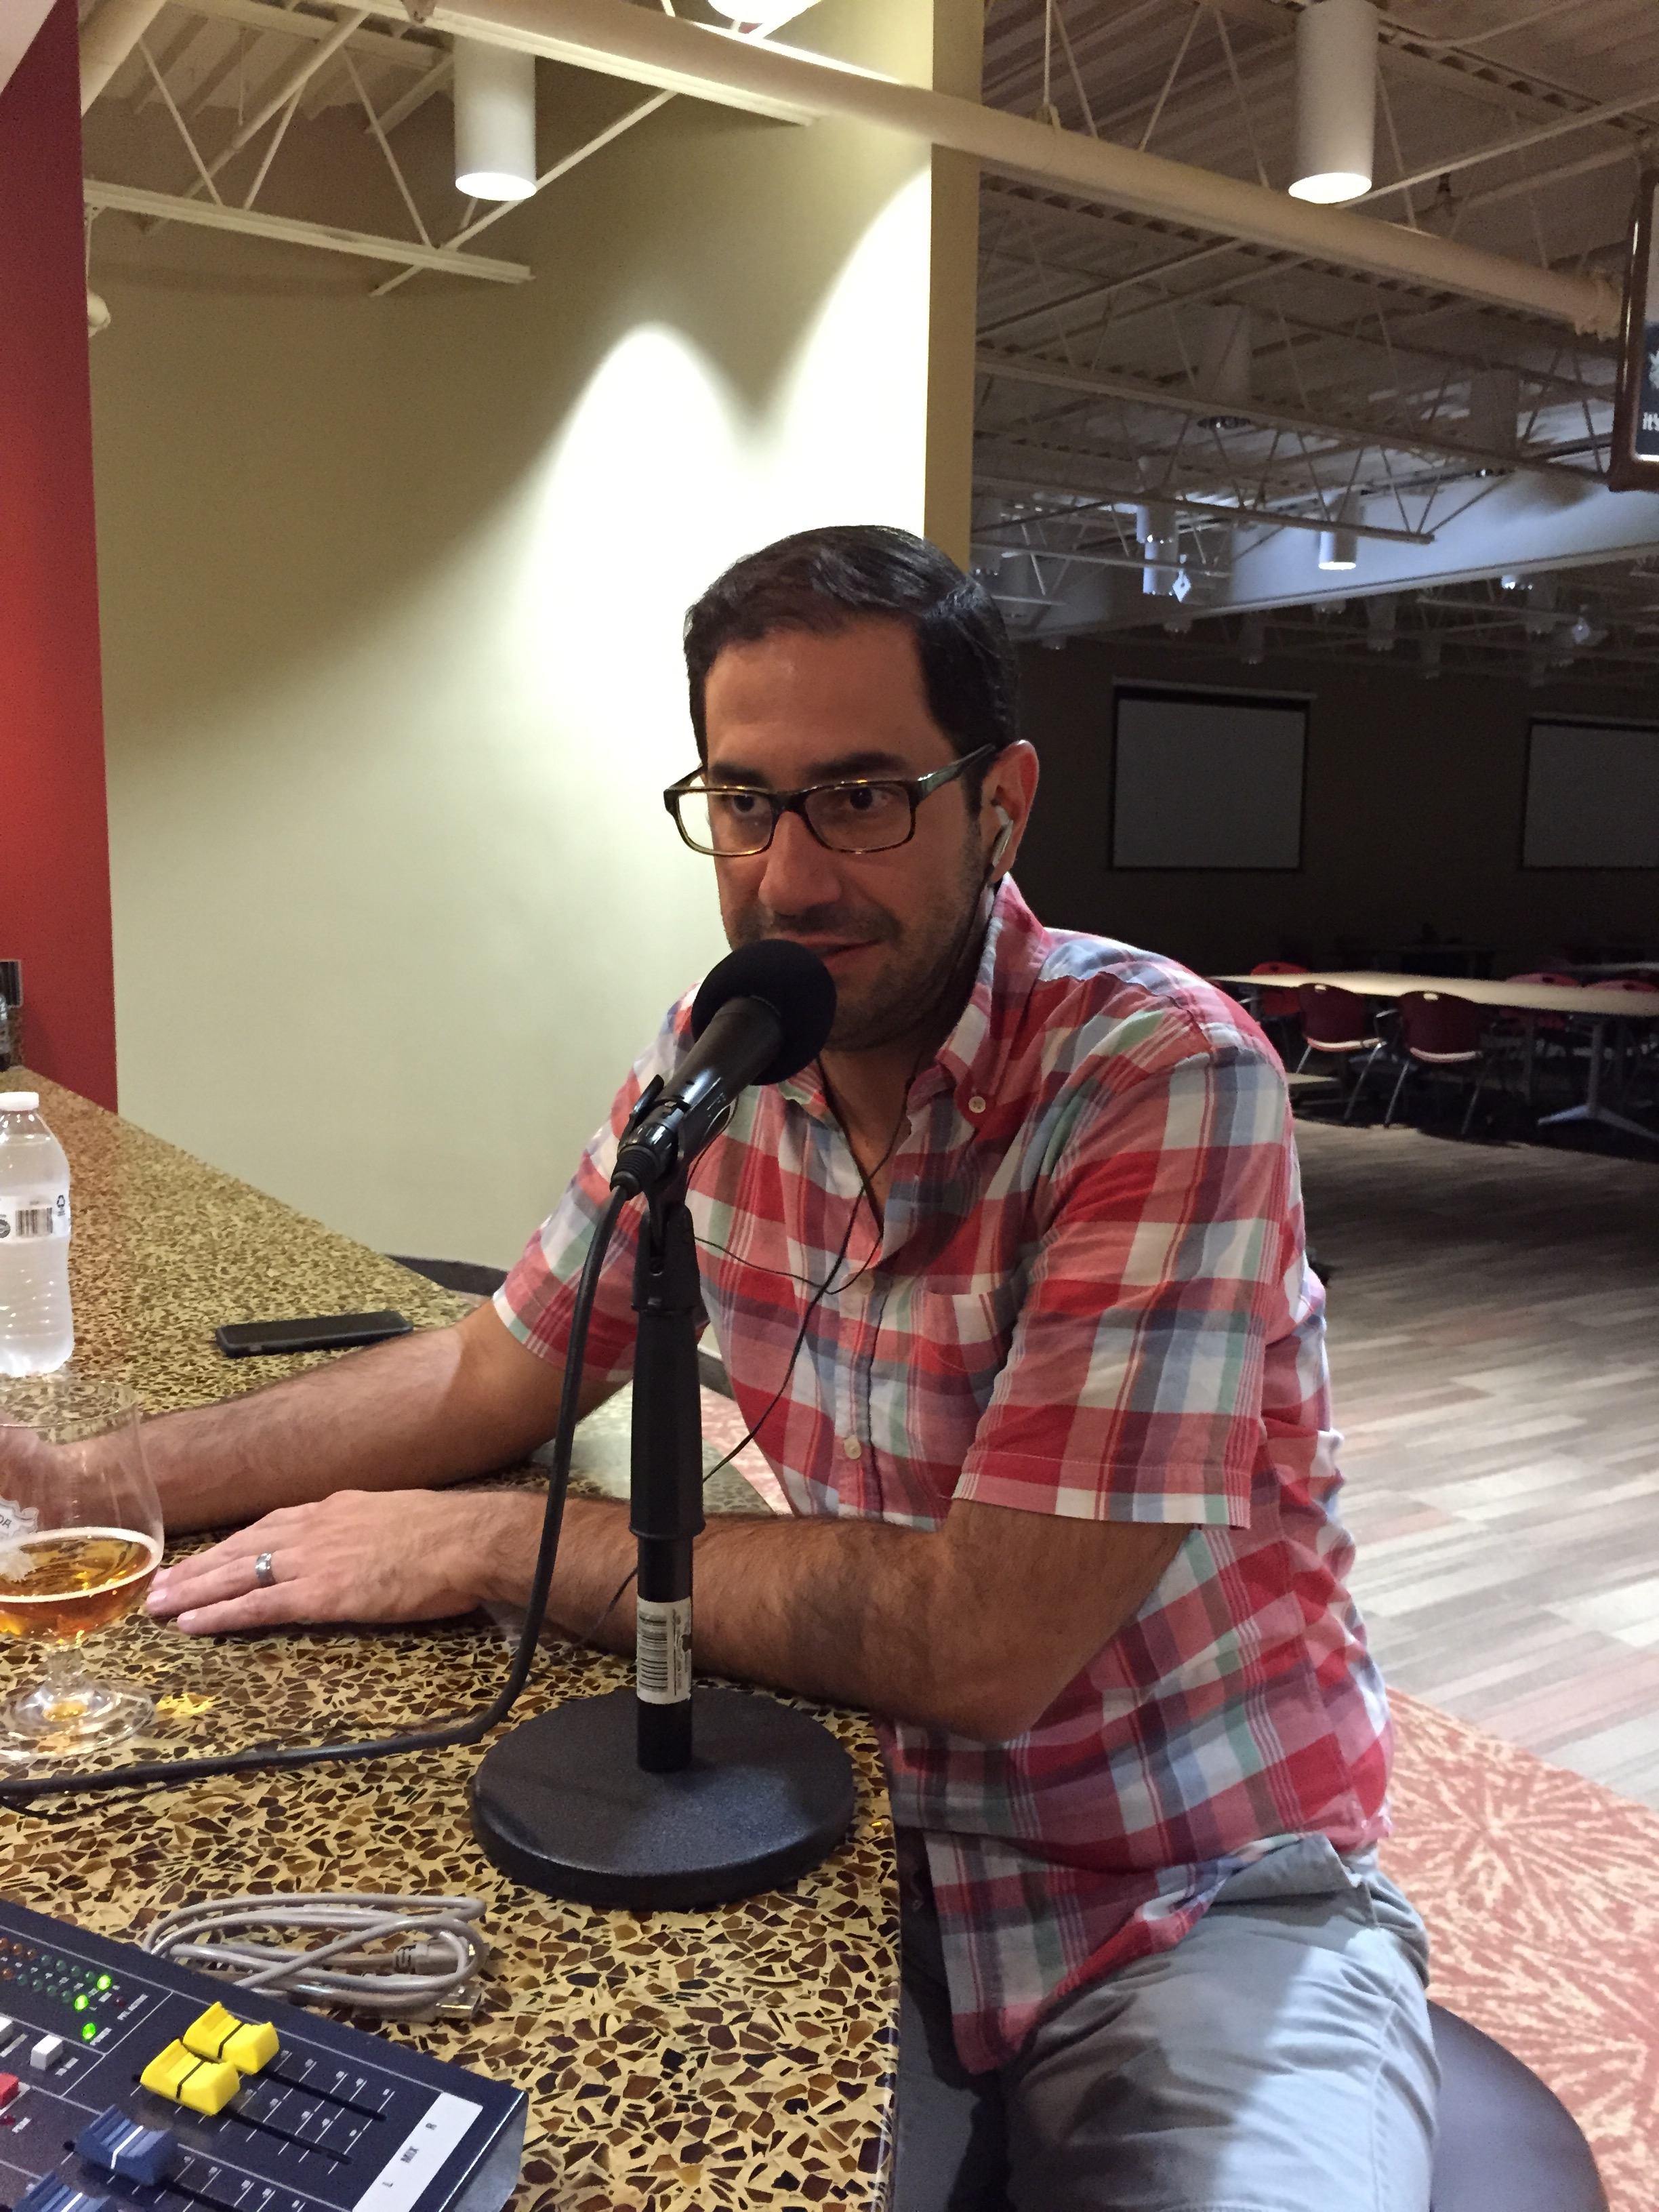 Episode 123 - Joe Ovies 99.9 The Fan and WRAL Sportsfan with Sierra, Olde  Hickory & D9!   Tales From the Cask